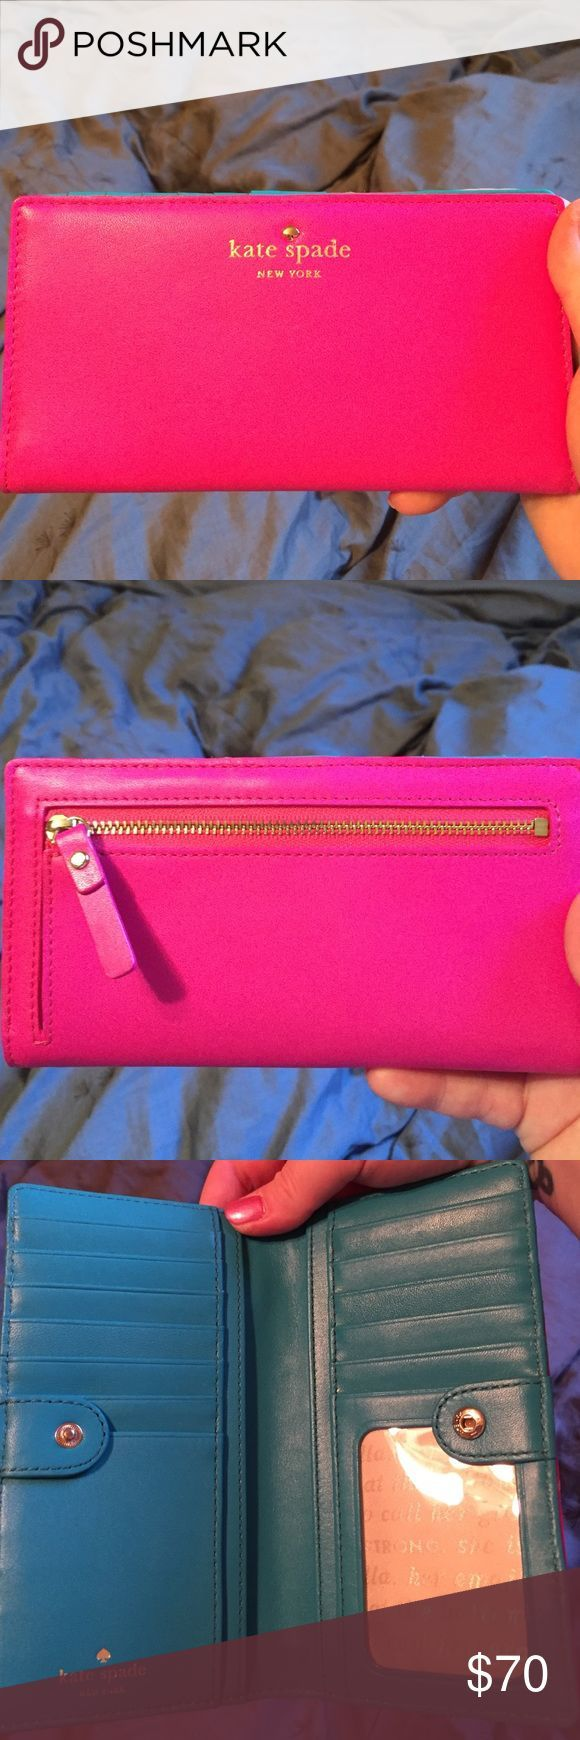 Kate Spade Cobble Hill Stacey wallet Pink outside, blue inside. Lots of room for cards. Brand new, never used kate spade Bags Wallets - handbags online sale, designer womens purses, leather handbags sale *sponsored https://www.pinterest.com/purses_handbags/ https://www.pinterest.com/explore/hand-bags/ https://www.pinterest.com/purses_handbags/leather-purses/ http://www.polyvore.com/handbags/shop?category_id=318